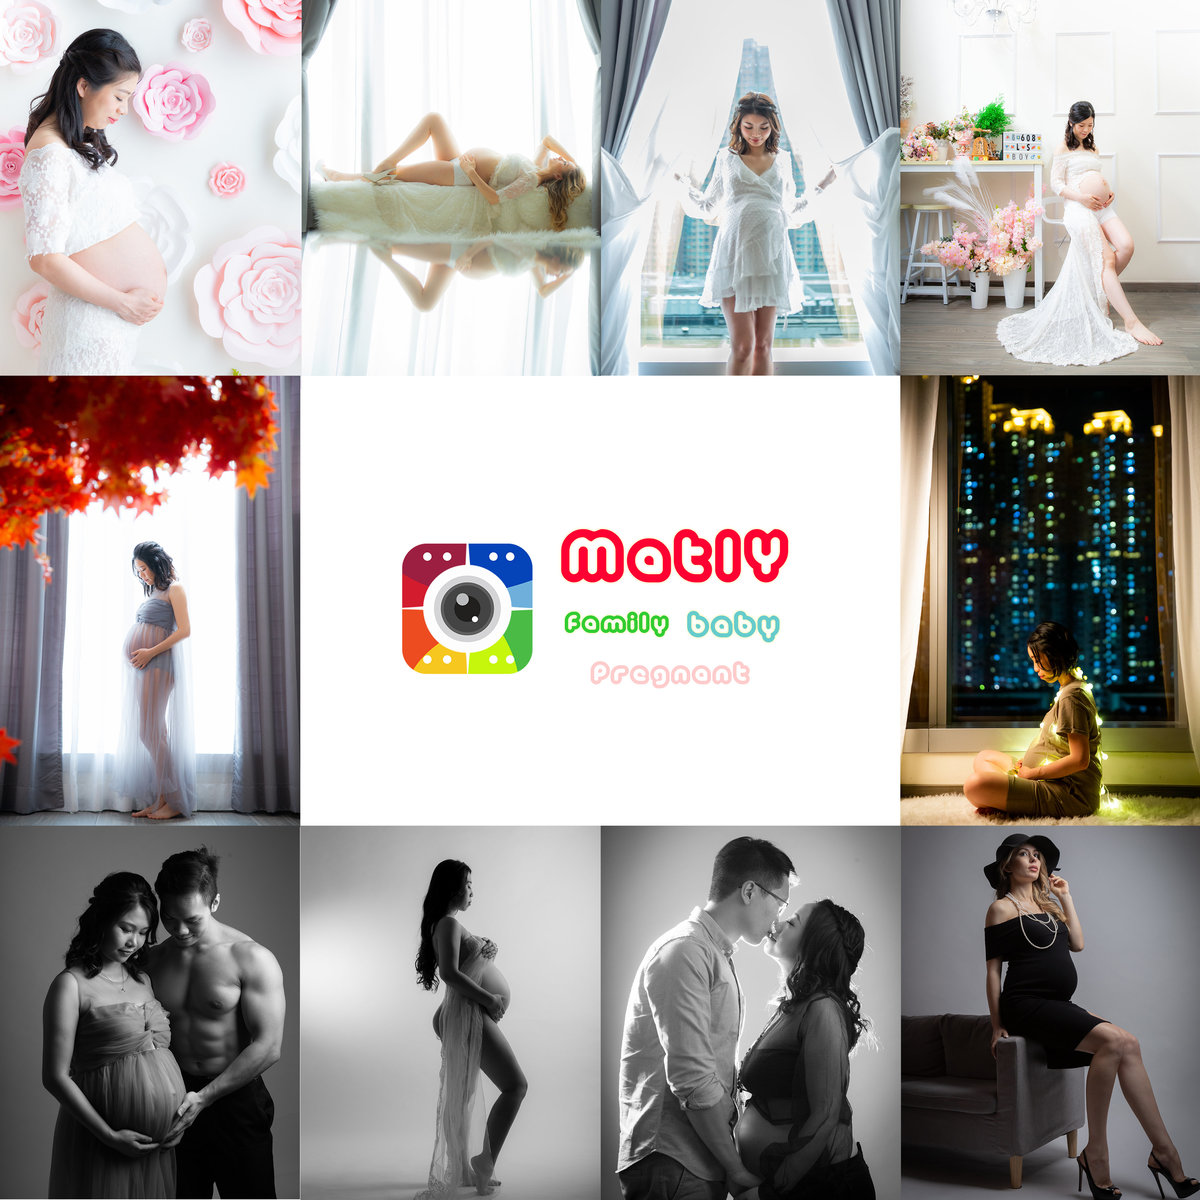 1 Session - 1 Hour Family Photoshoot Package for 3-4 Pax